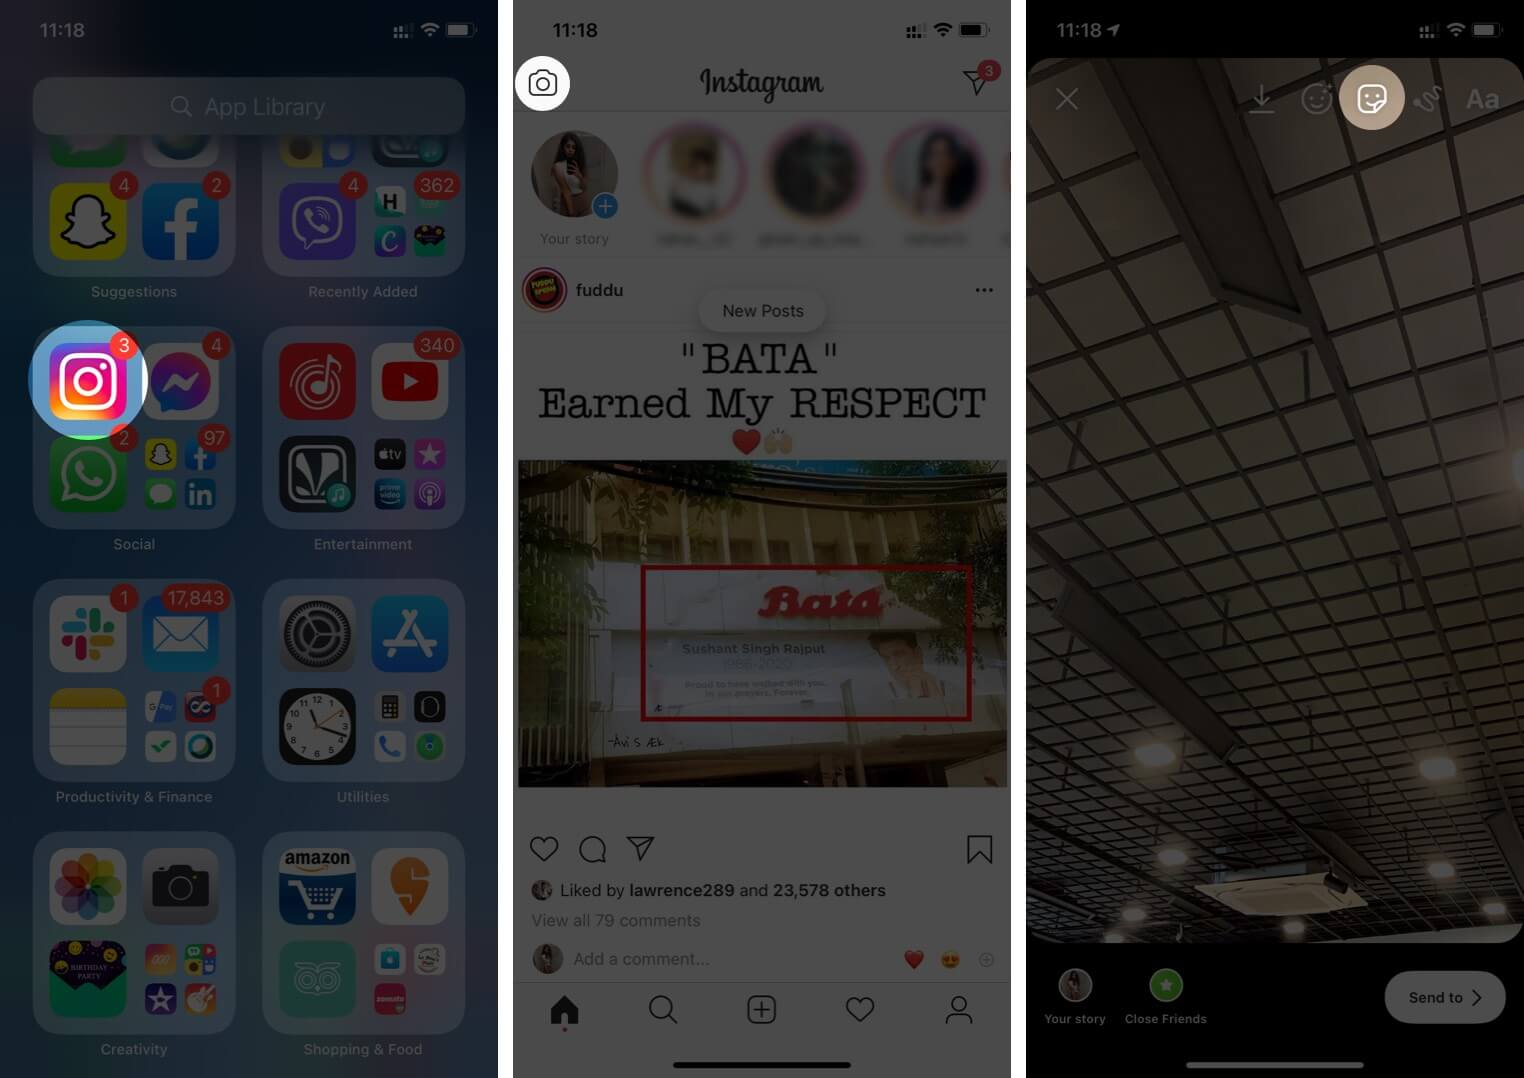 Open Instagram Tap on Camera Icon and then Tap on Sticker on iPhone